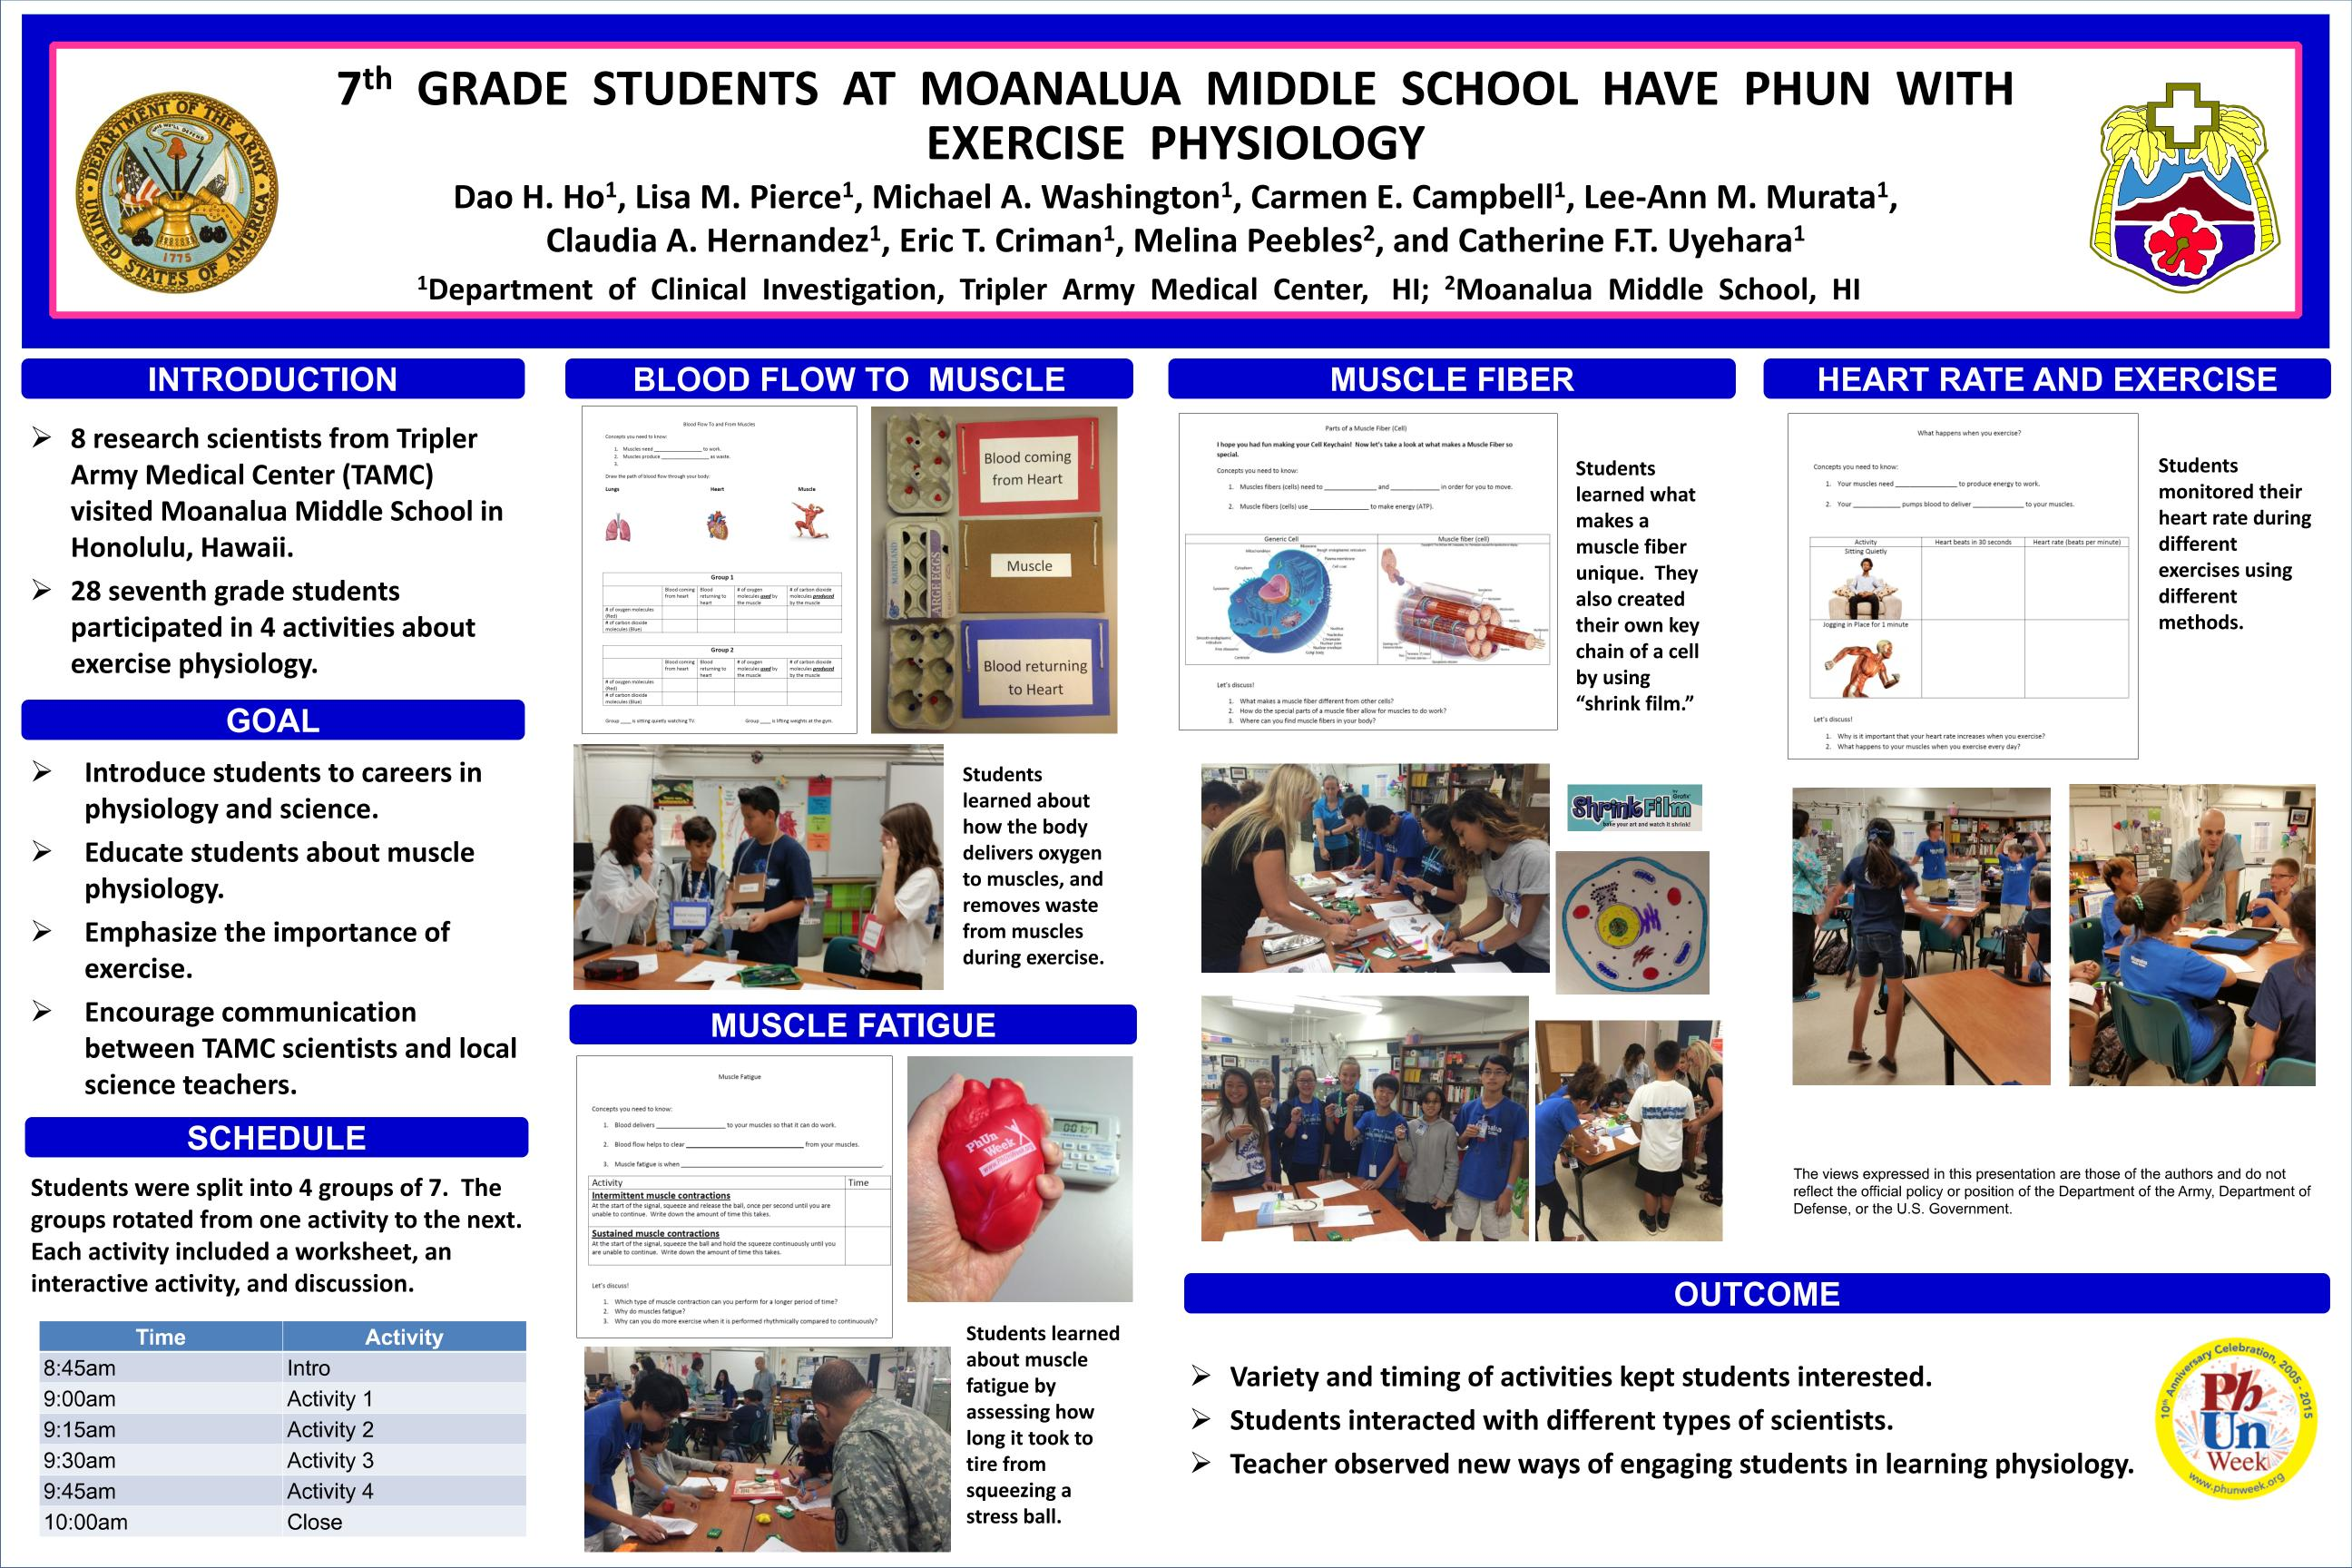 Search Results Chicken Wing Diagram Comparative Anatomy Lab 2 7th Grade Students At Moanalua Middle School Have Phun With Exercise Physiology Week Poster Session Eb 2016 Dao Ho Tripler Army Medical Center